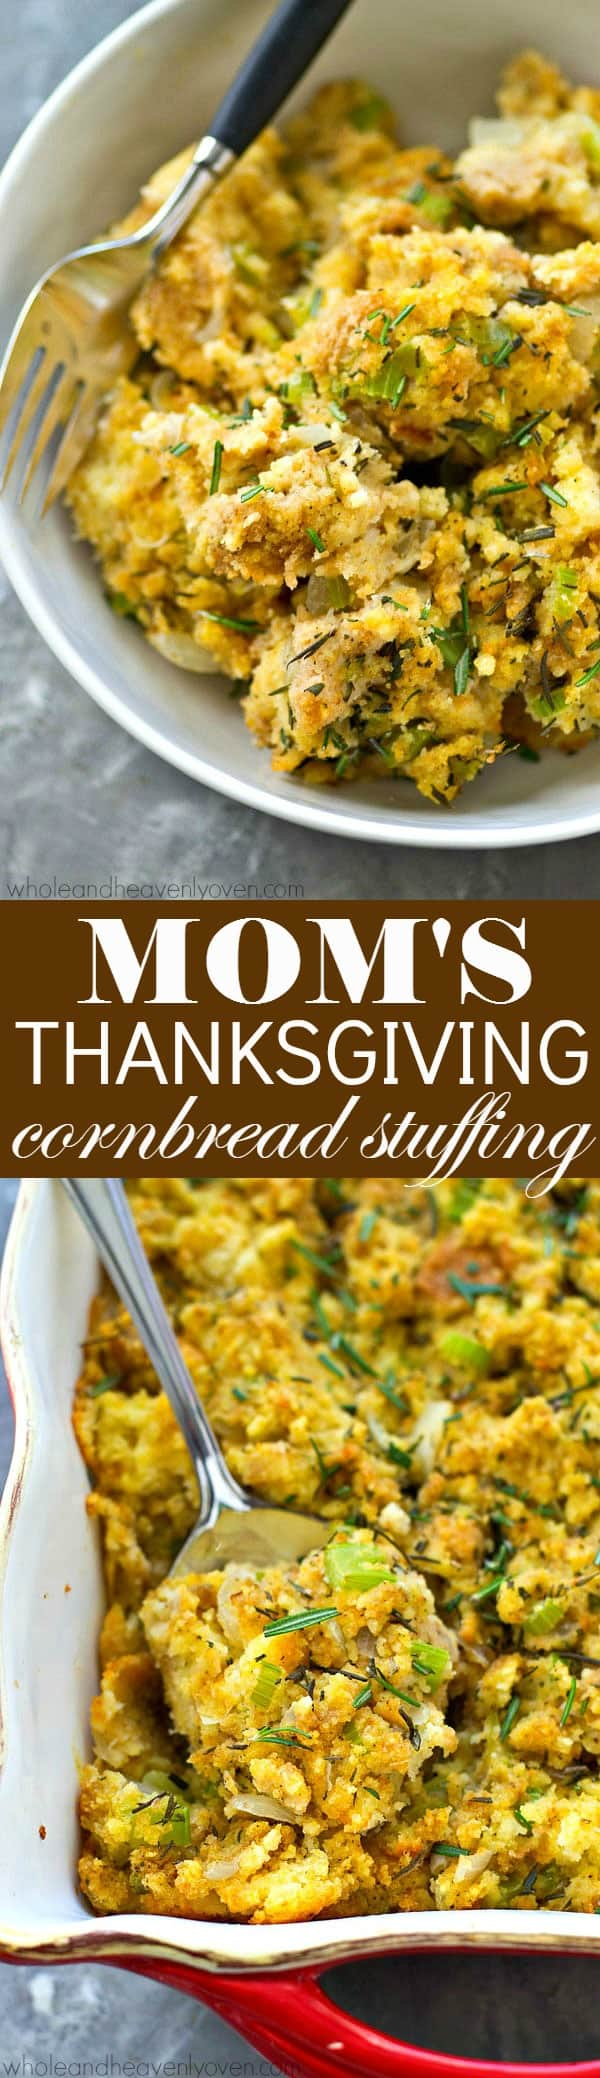 My mom's family recipe for cornbread stuffing is a quintessential side dish on our Thanksgiving table and you'll soon see why it's the best ever! It will quickly become a new holiday tradition in your family.